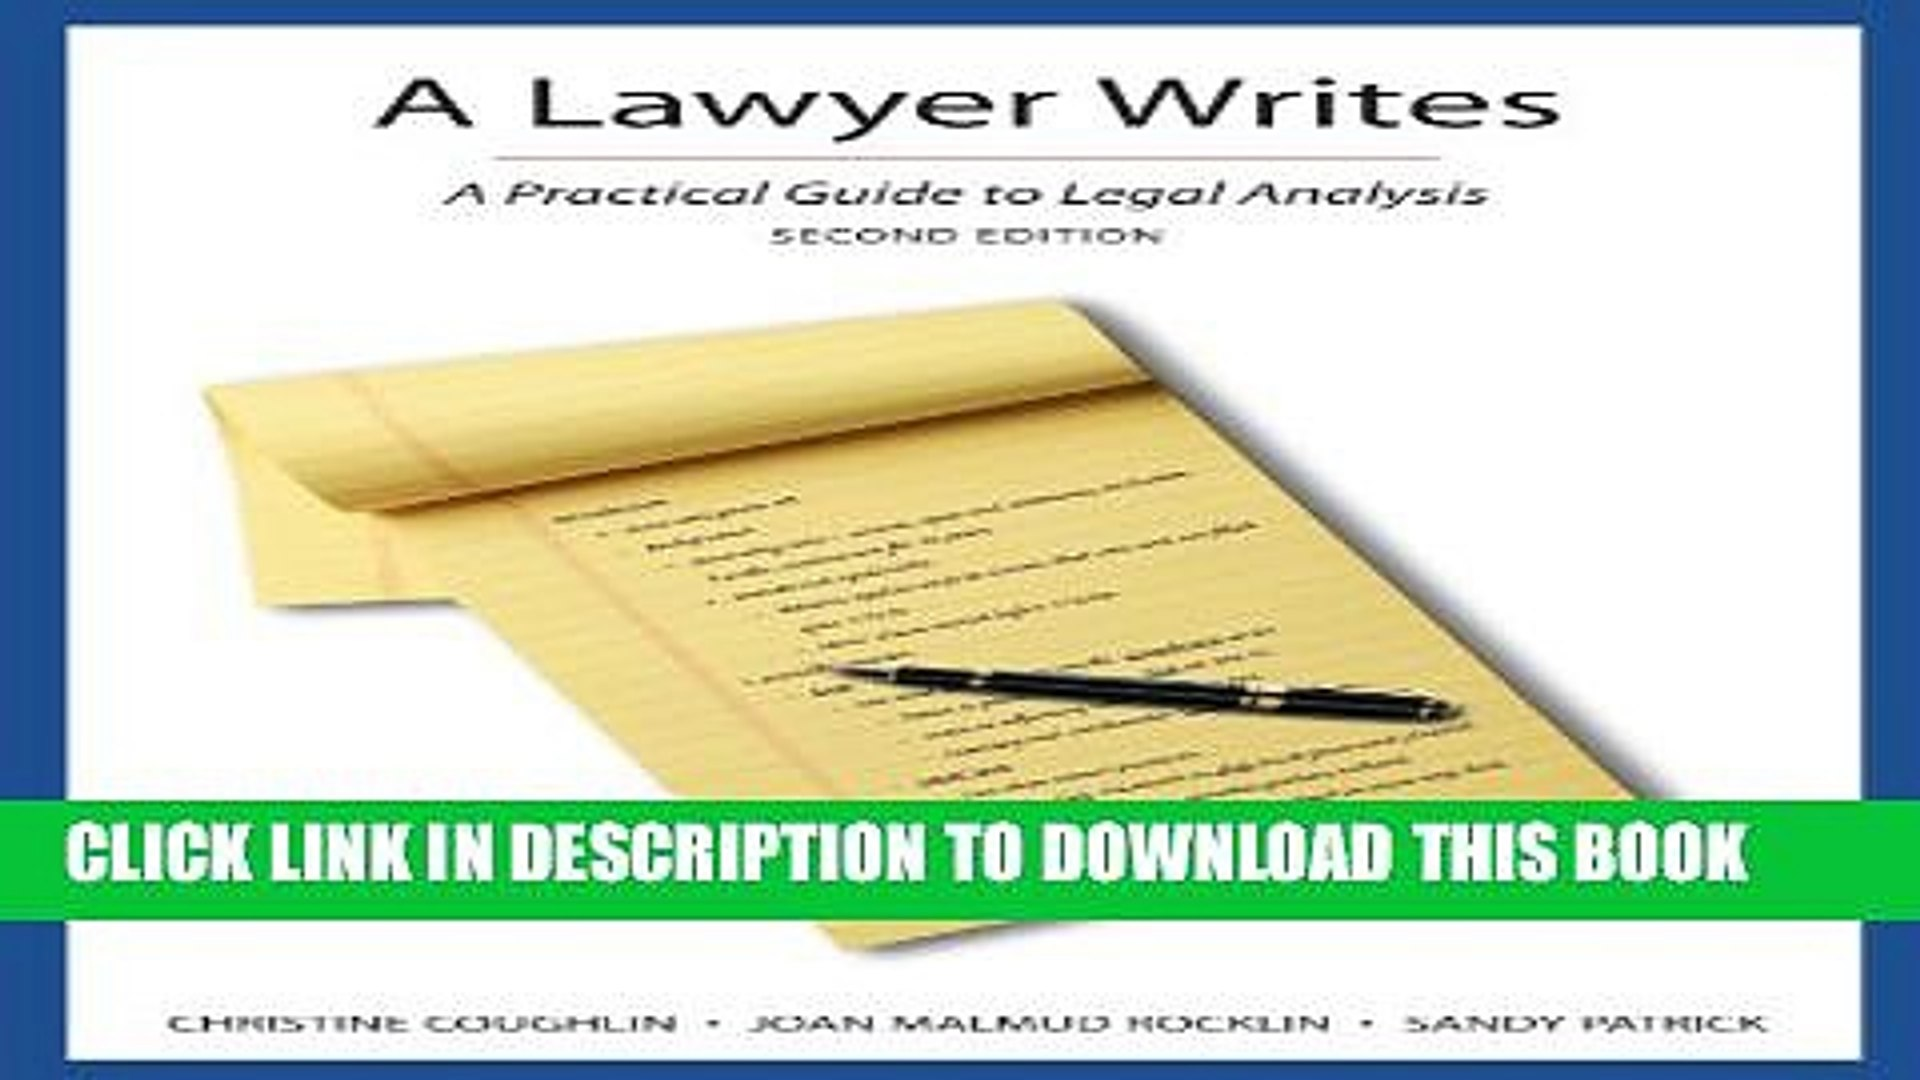 A Lawyer Writes A Practical Guide to Legal Analysis